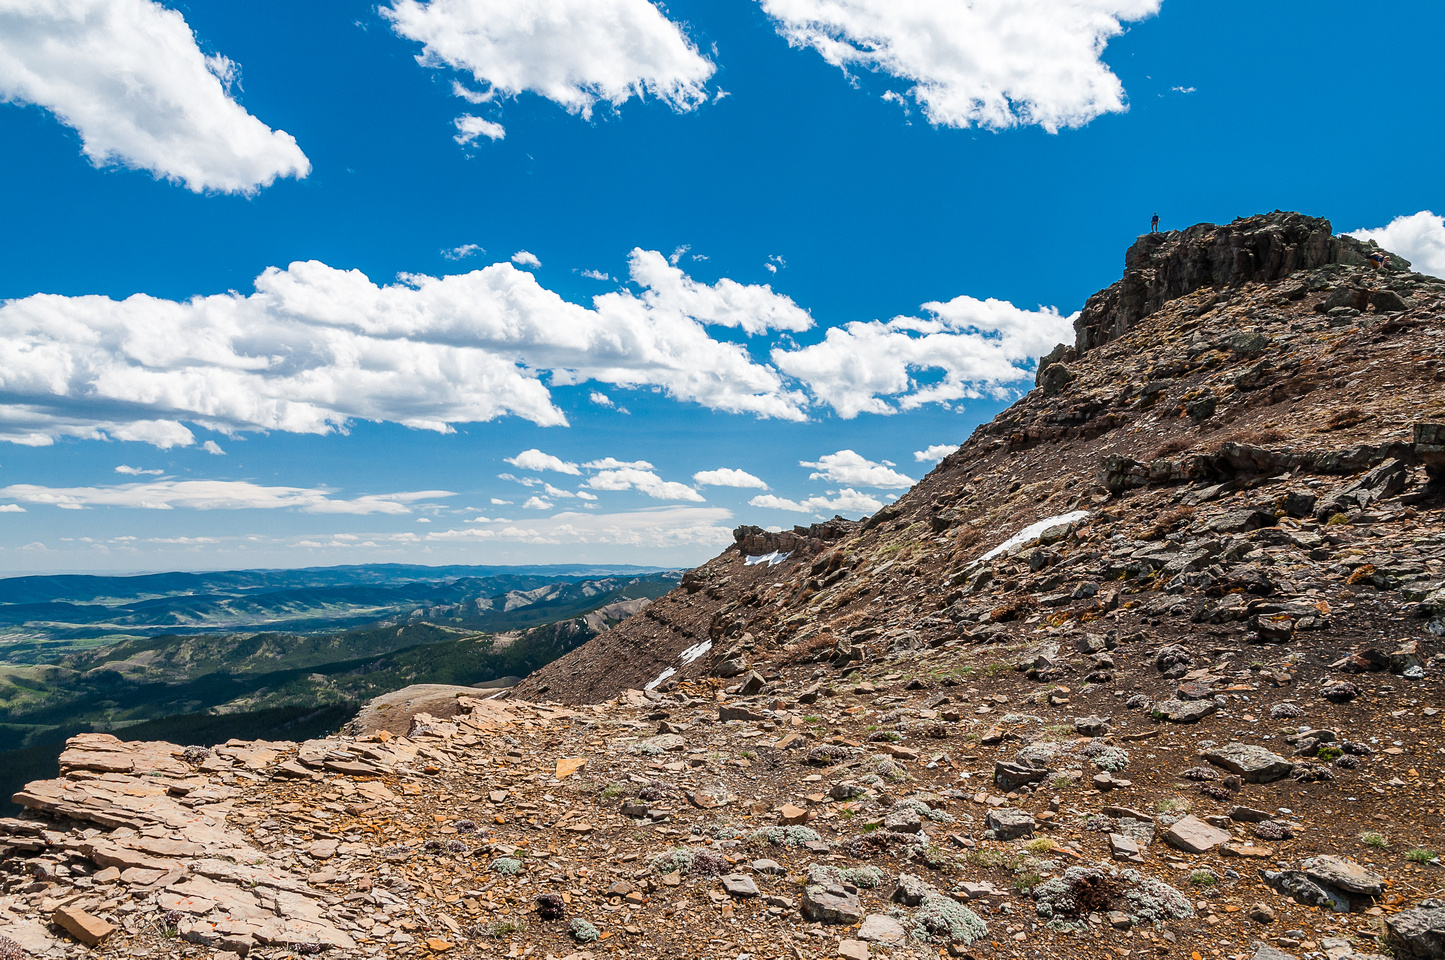 Looking back at the false summit of Saddle Mountain from the dip in the 'saddle'.